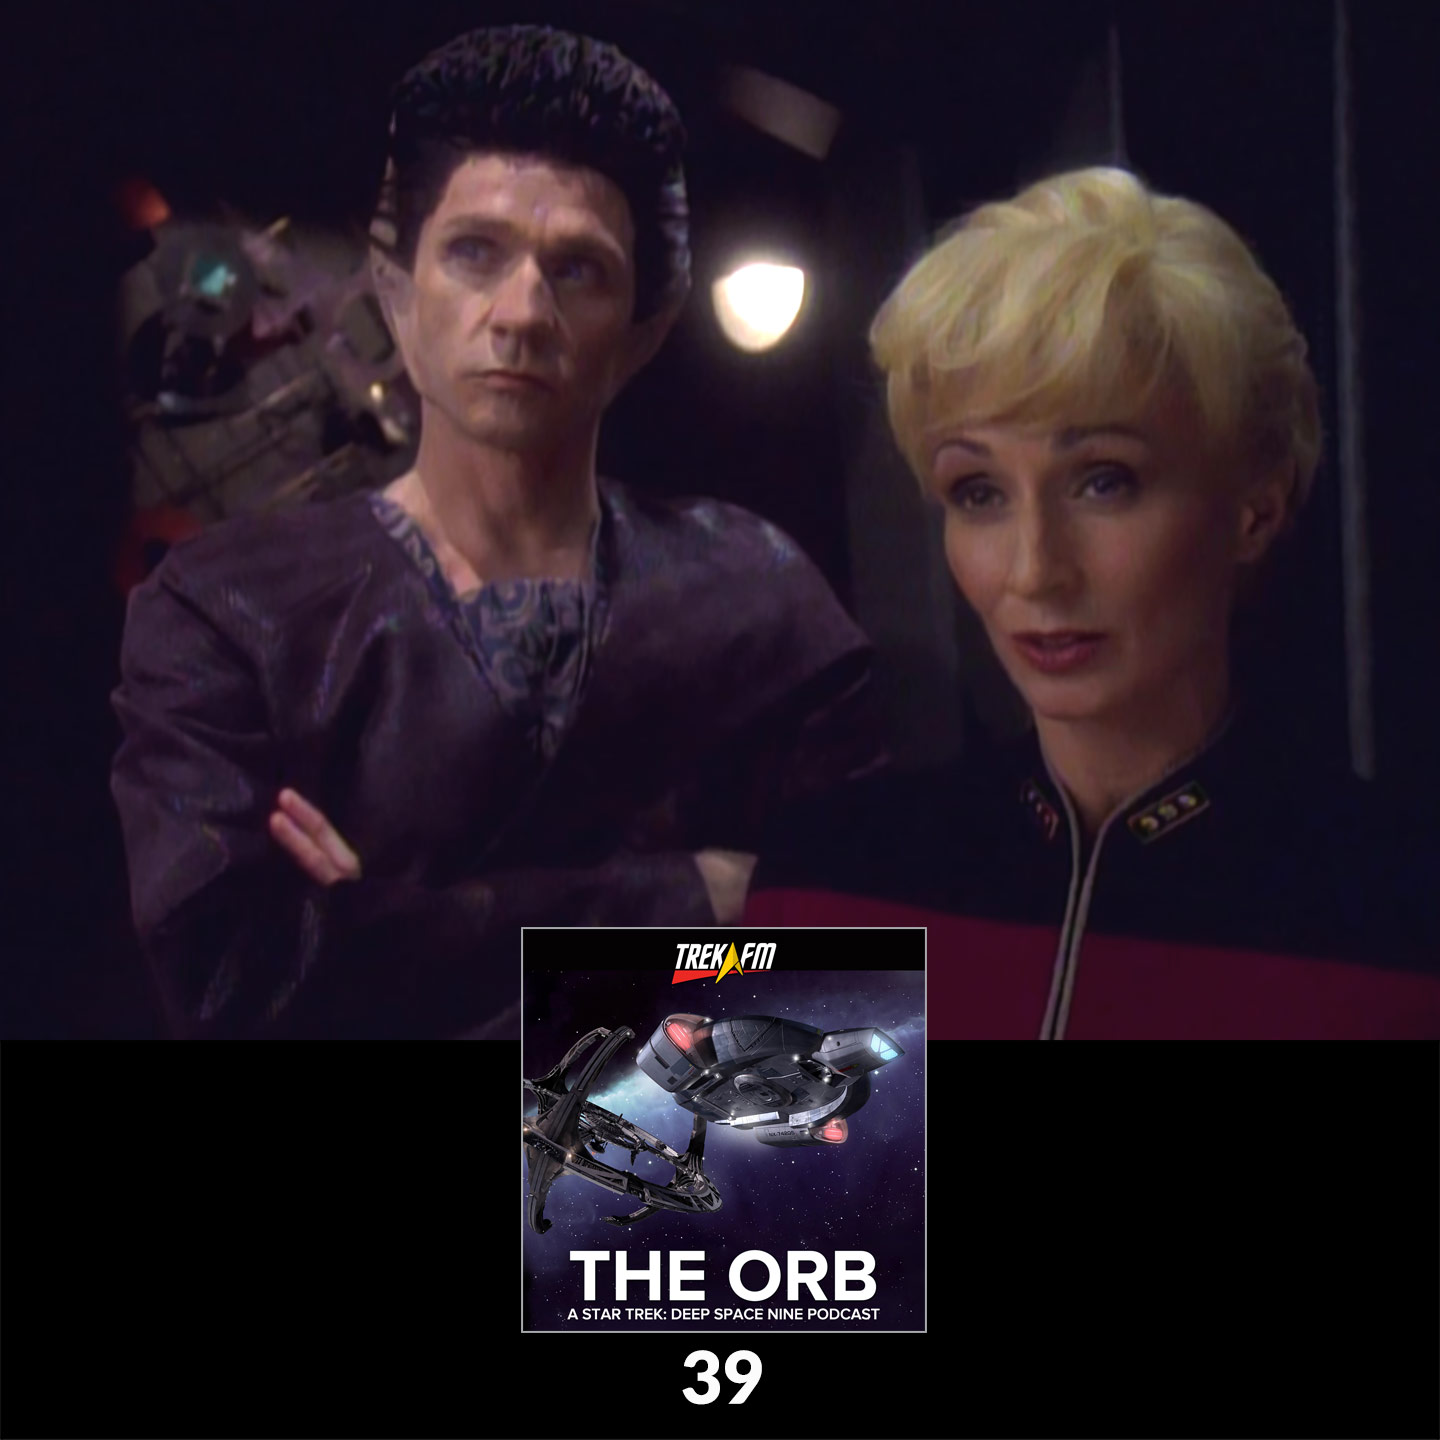 The Orb 39: The Puppet Masters